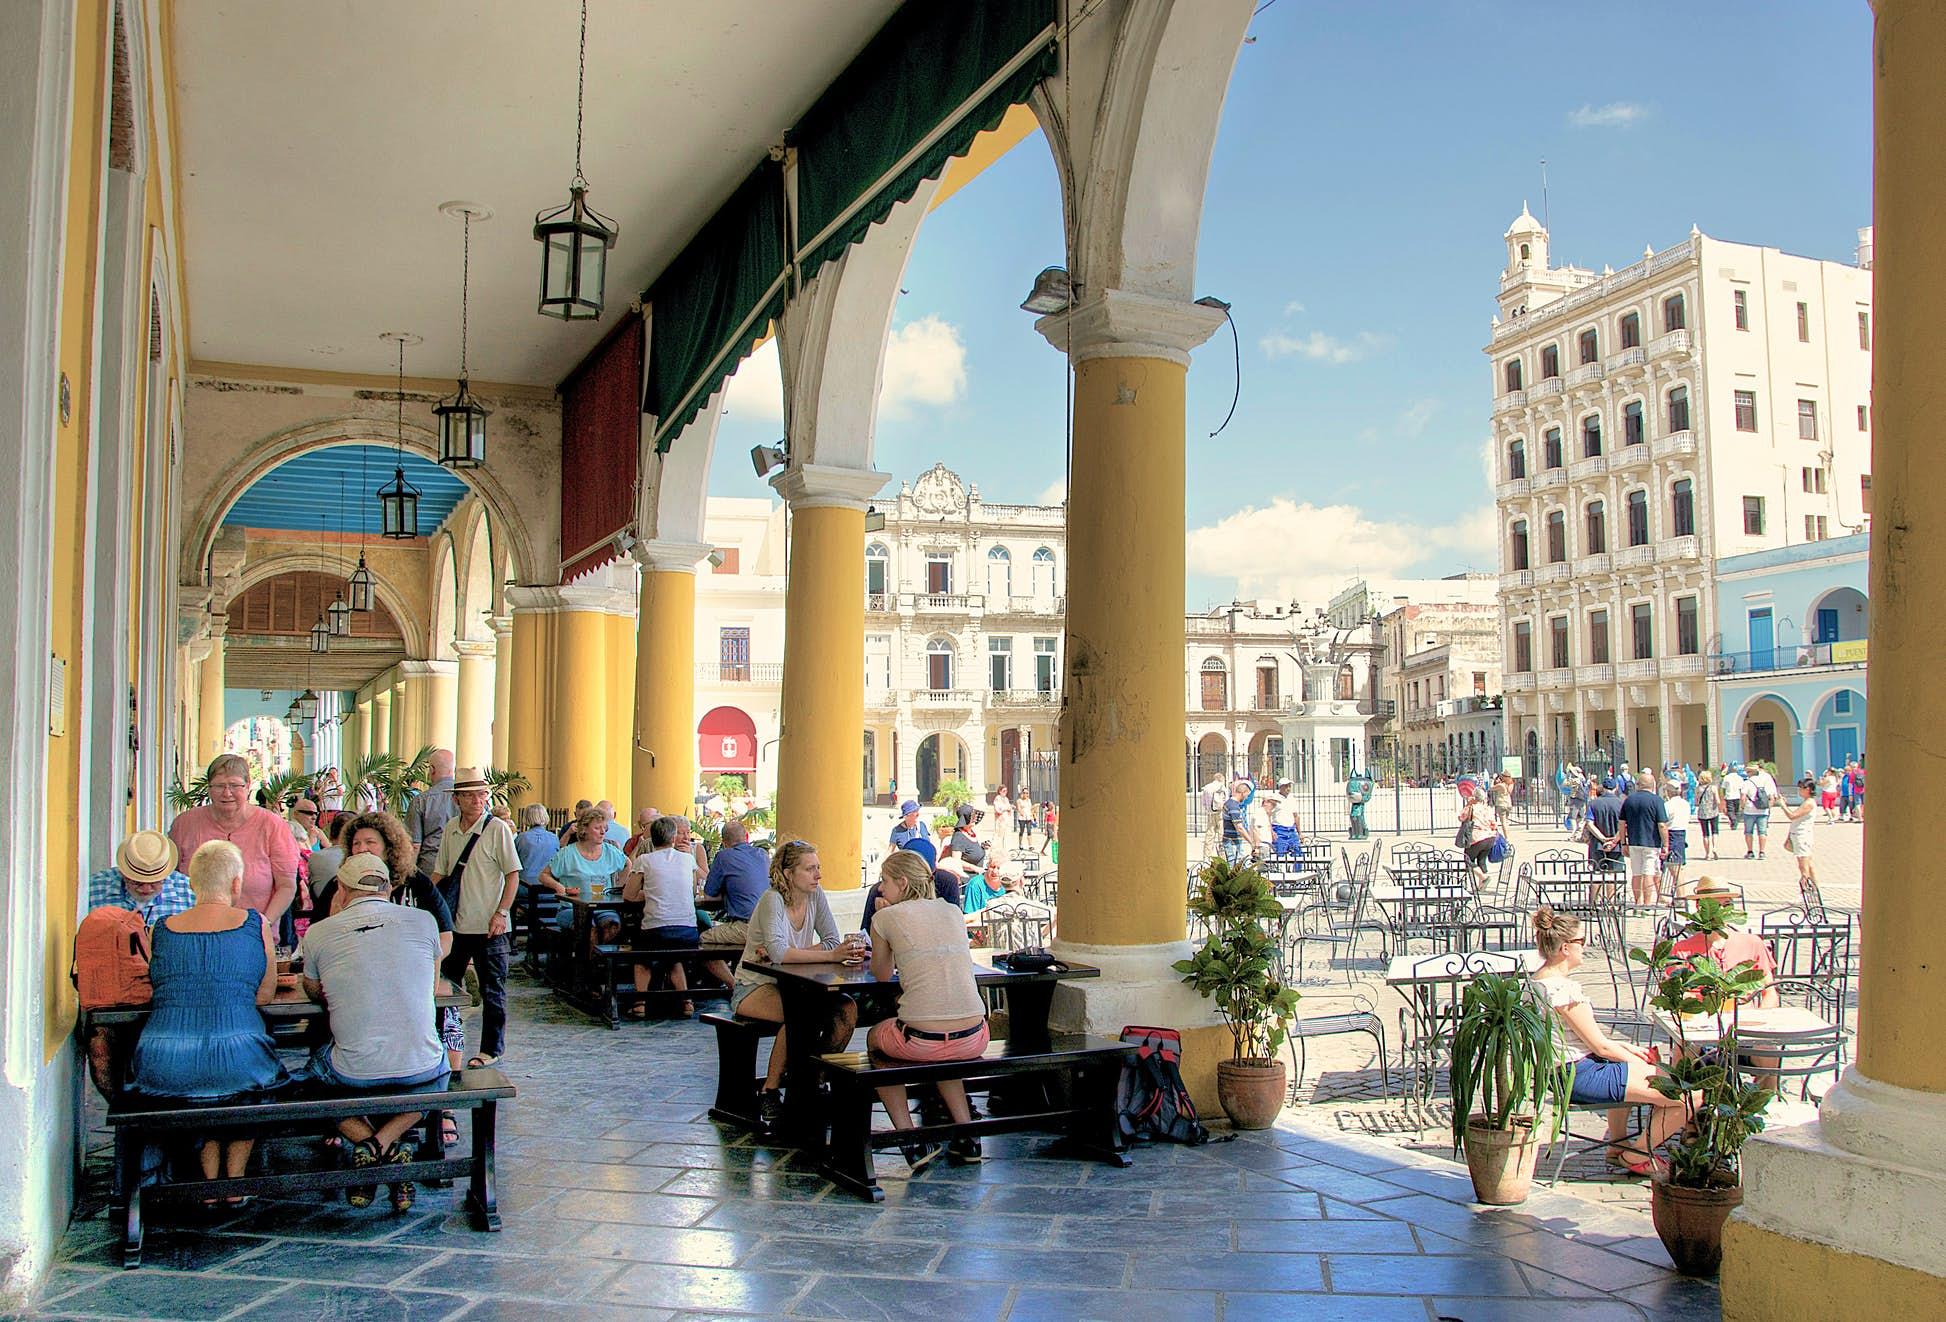 Visitors sitting at a cafe in Plaza Vieja (Old Square): tourism is the mainstay of the Cuban economy © Alarax/Shutterstock